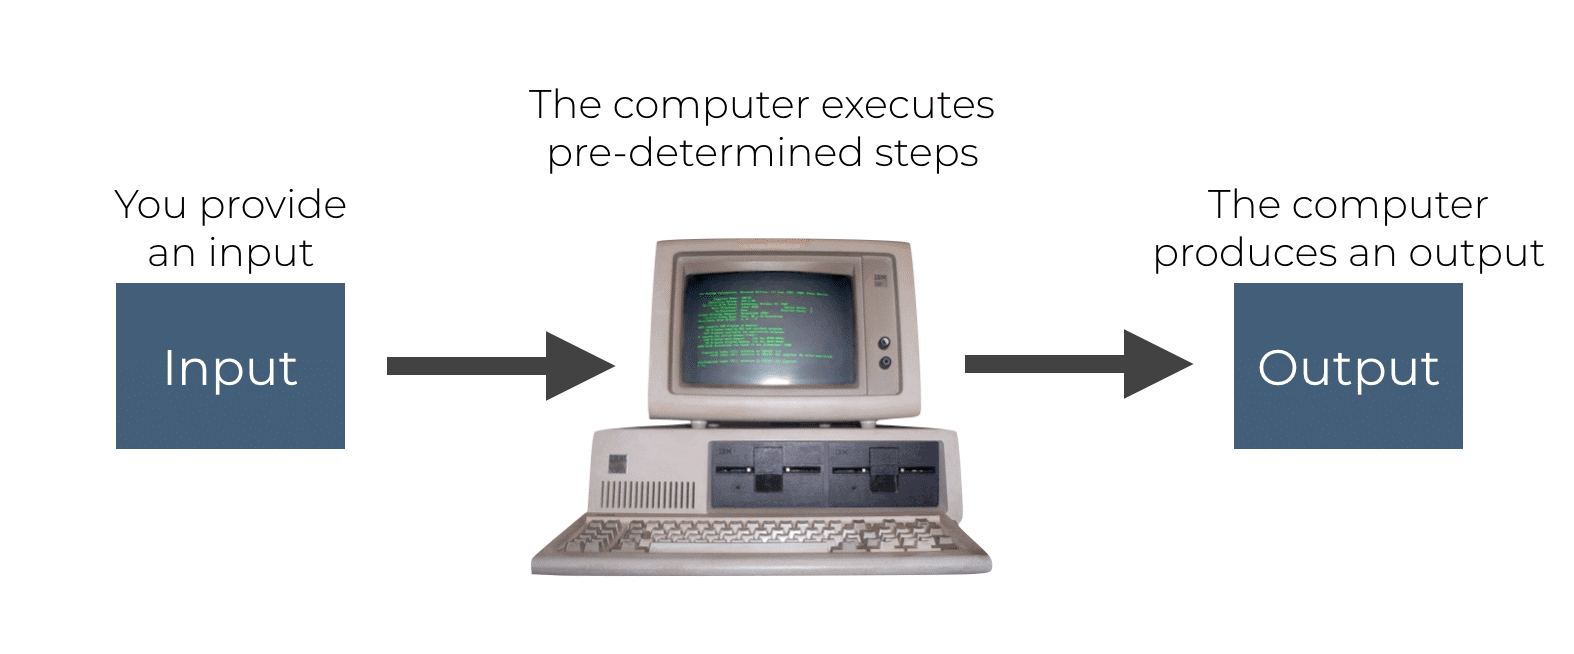 An image that shows how a computer transforms an input into an output.